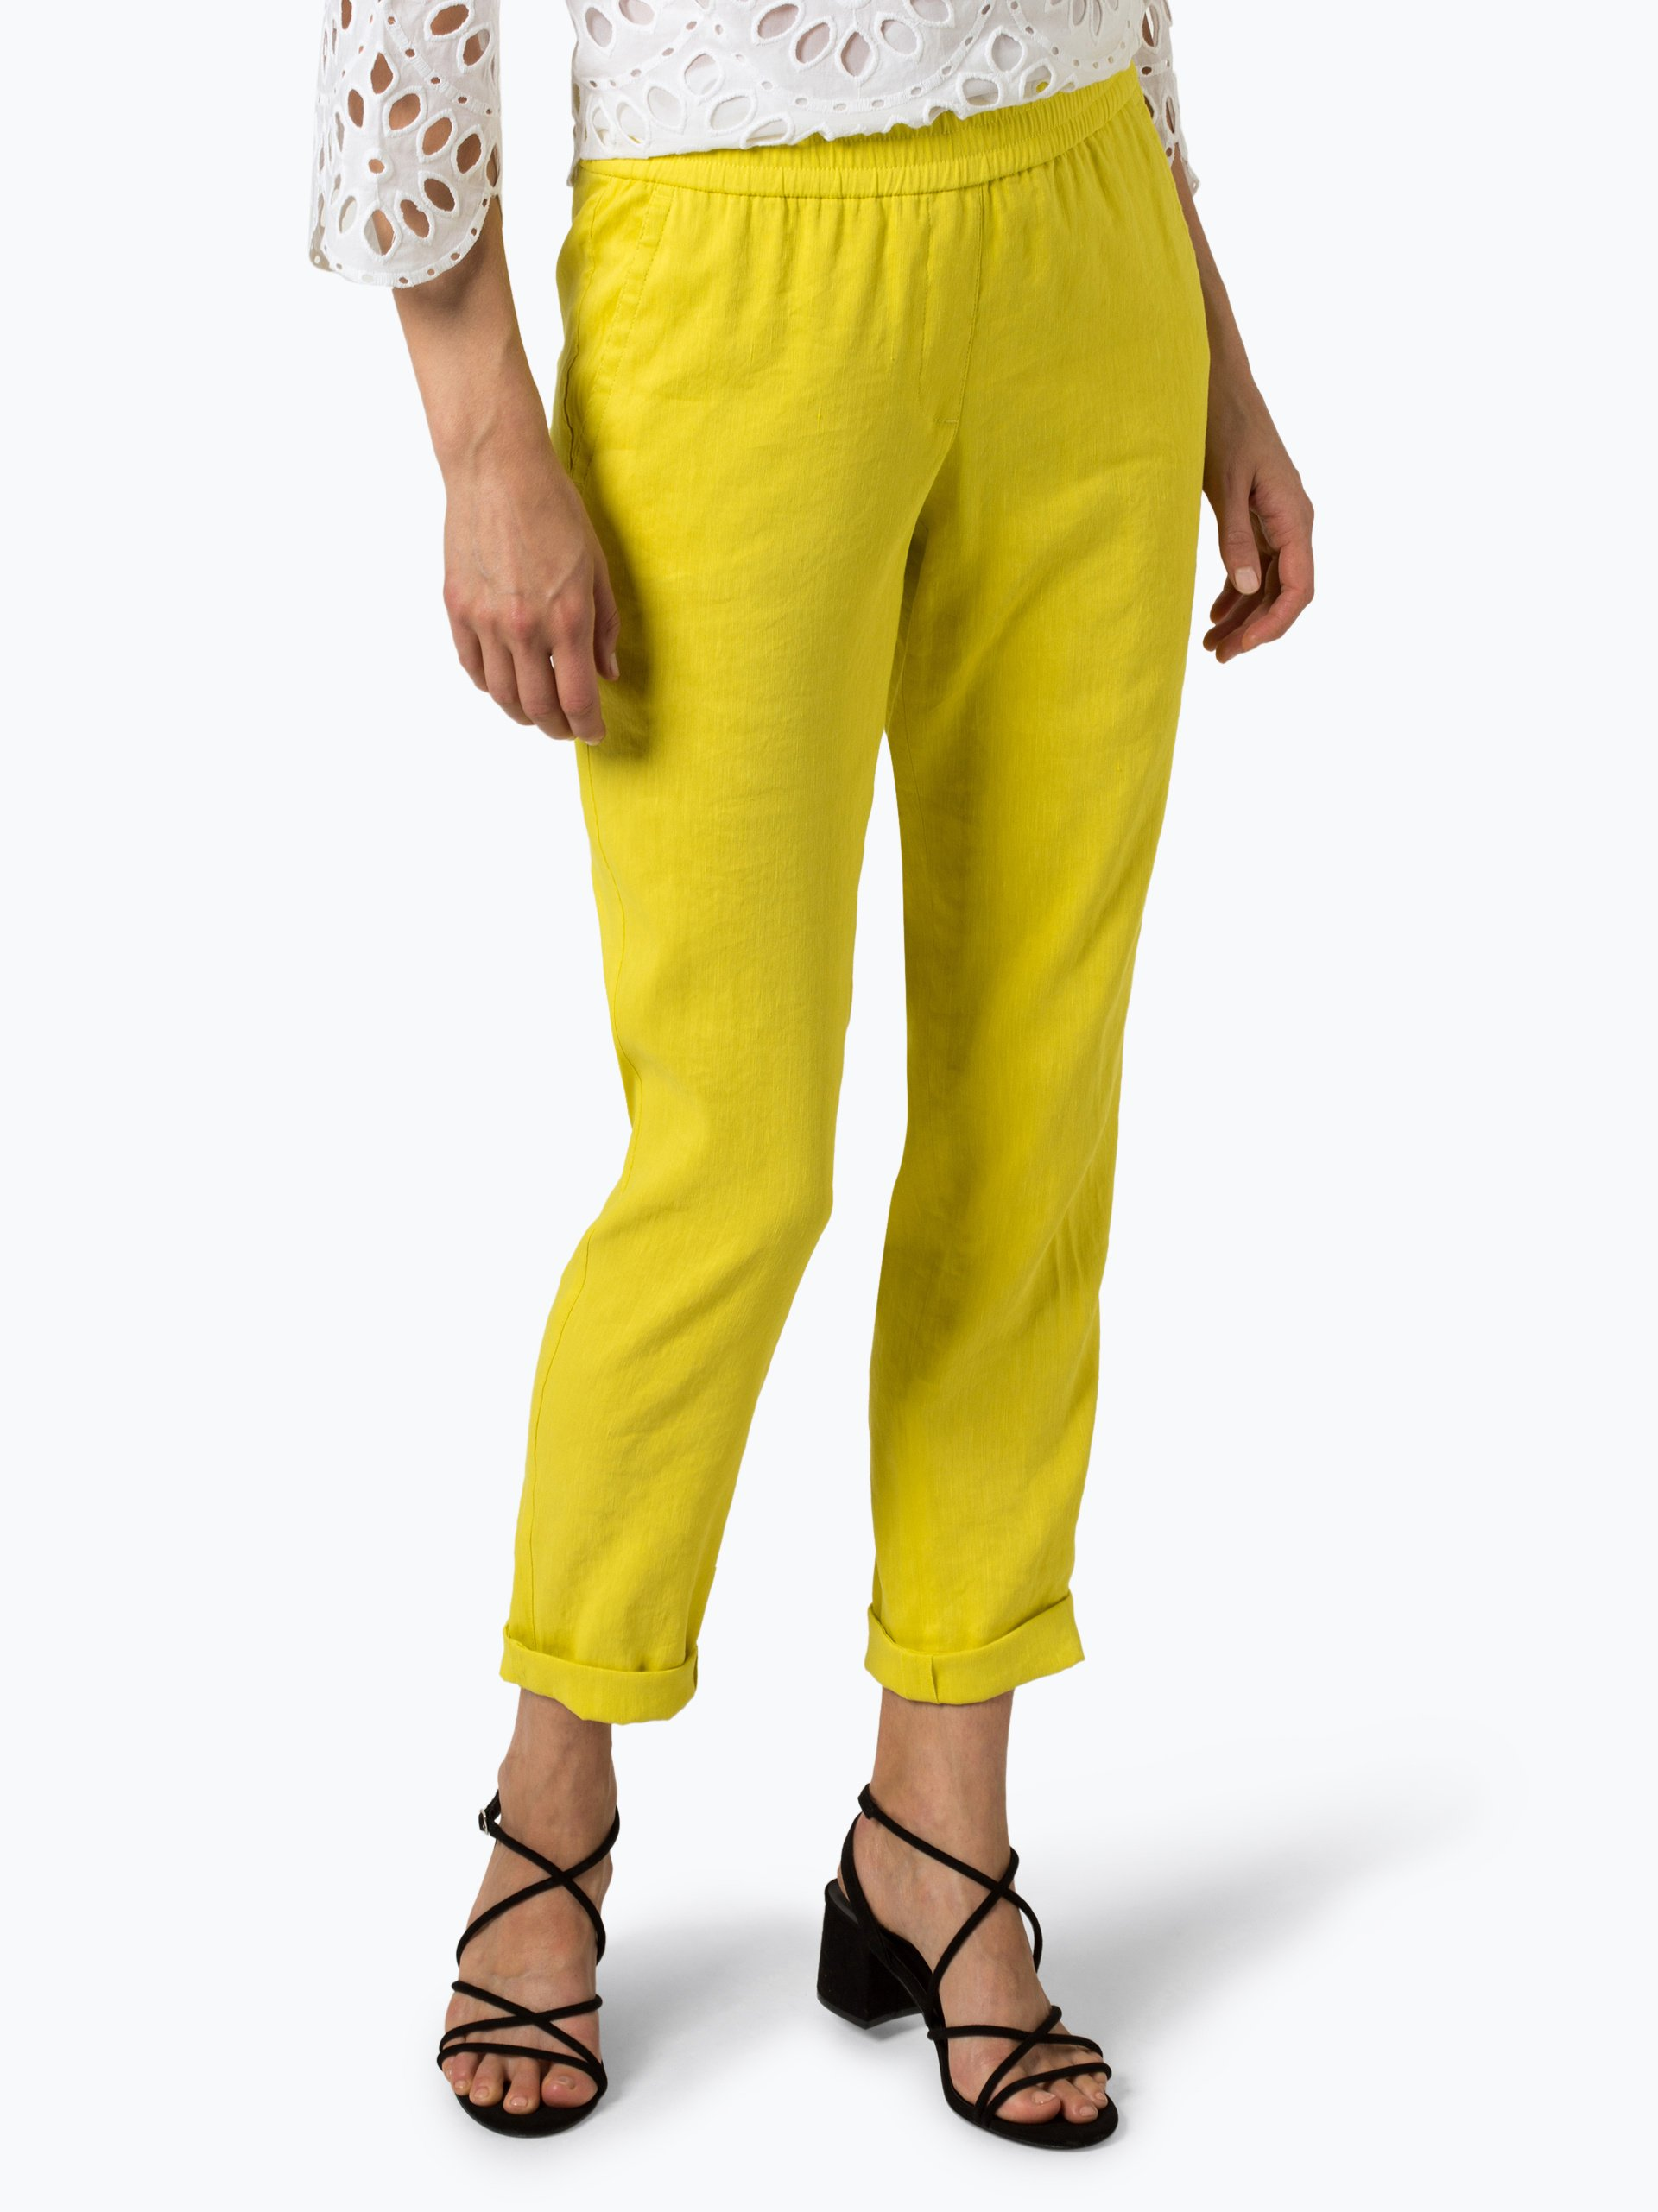 Marc Cain Collections Damen Hose mit Leinen-Anteil